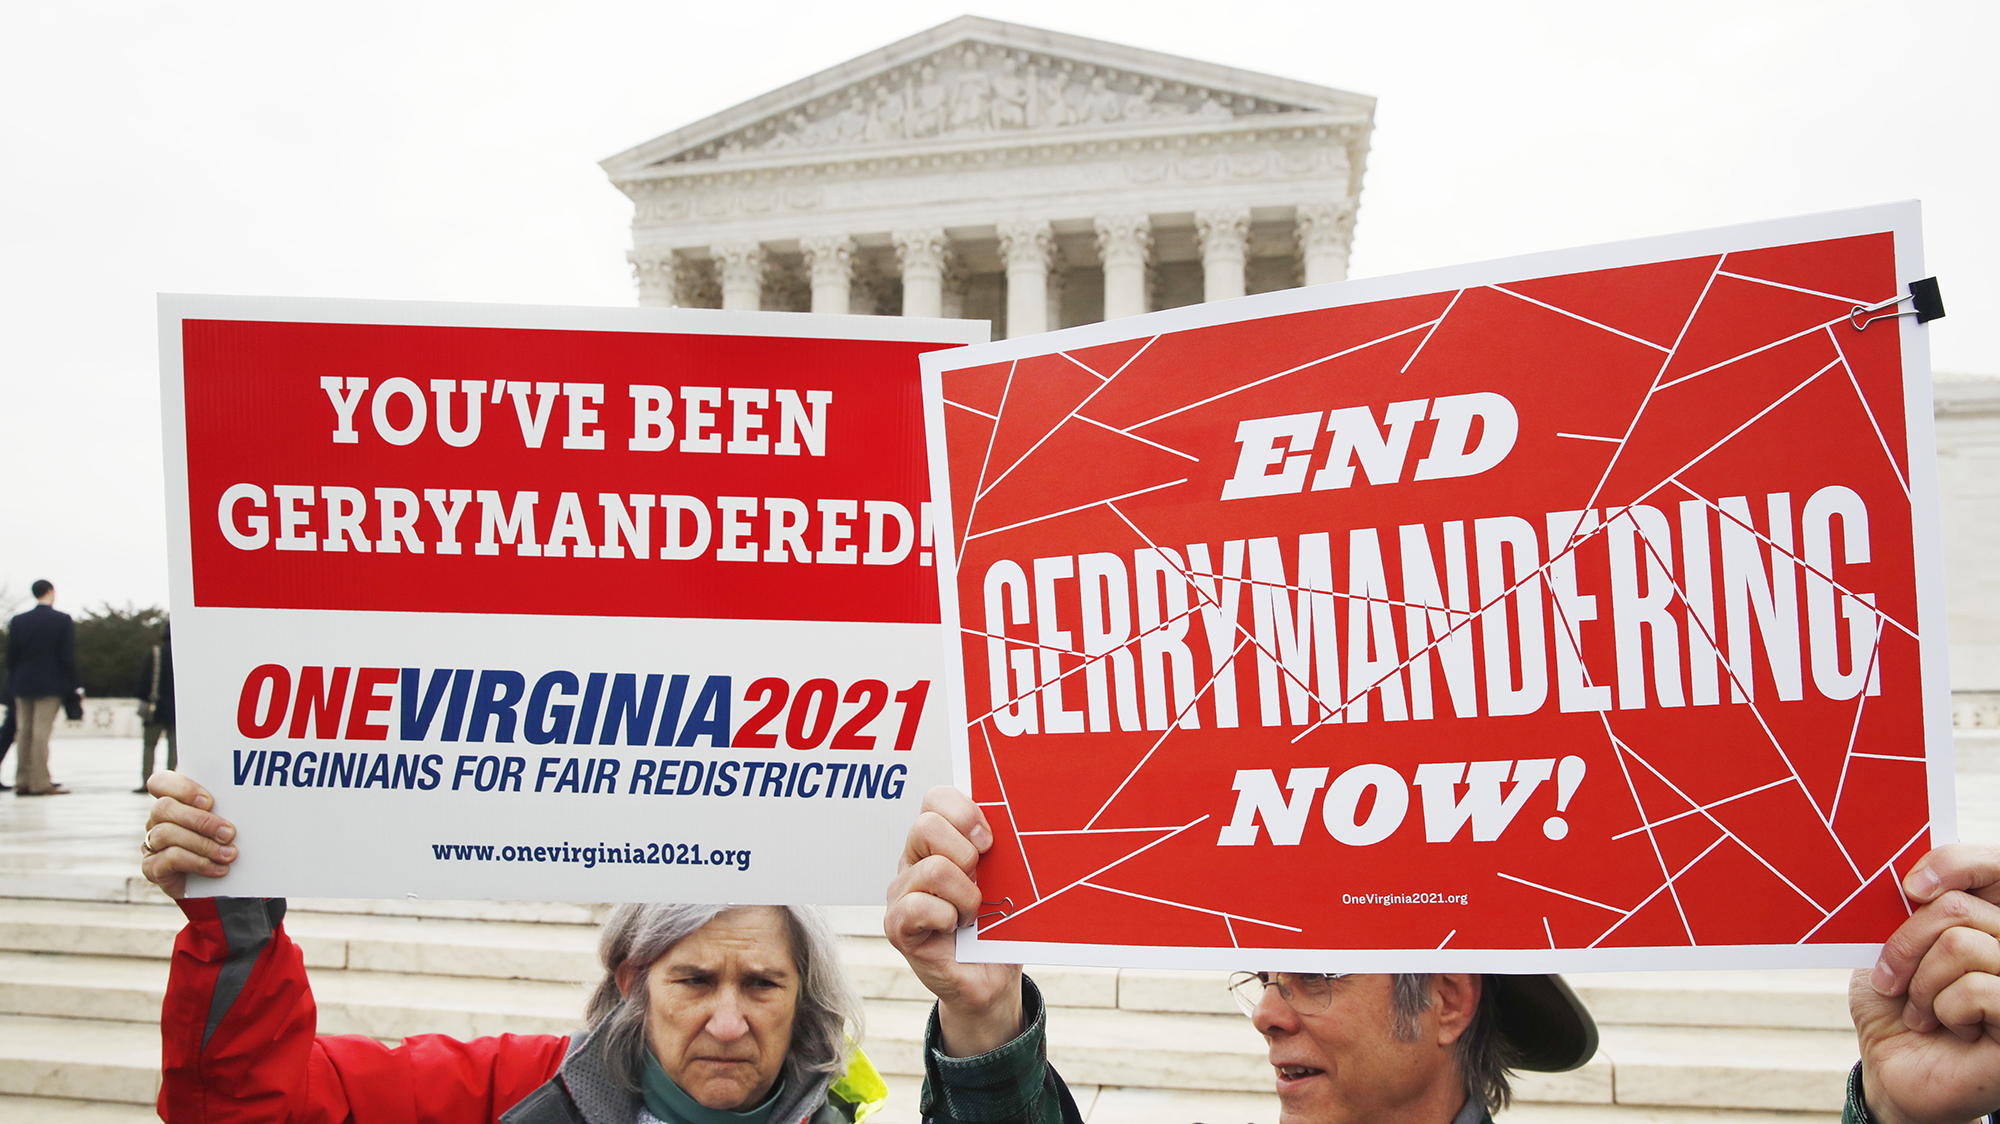 Supreme Court delays judgments on two partisan gerrymandering cases